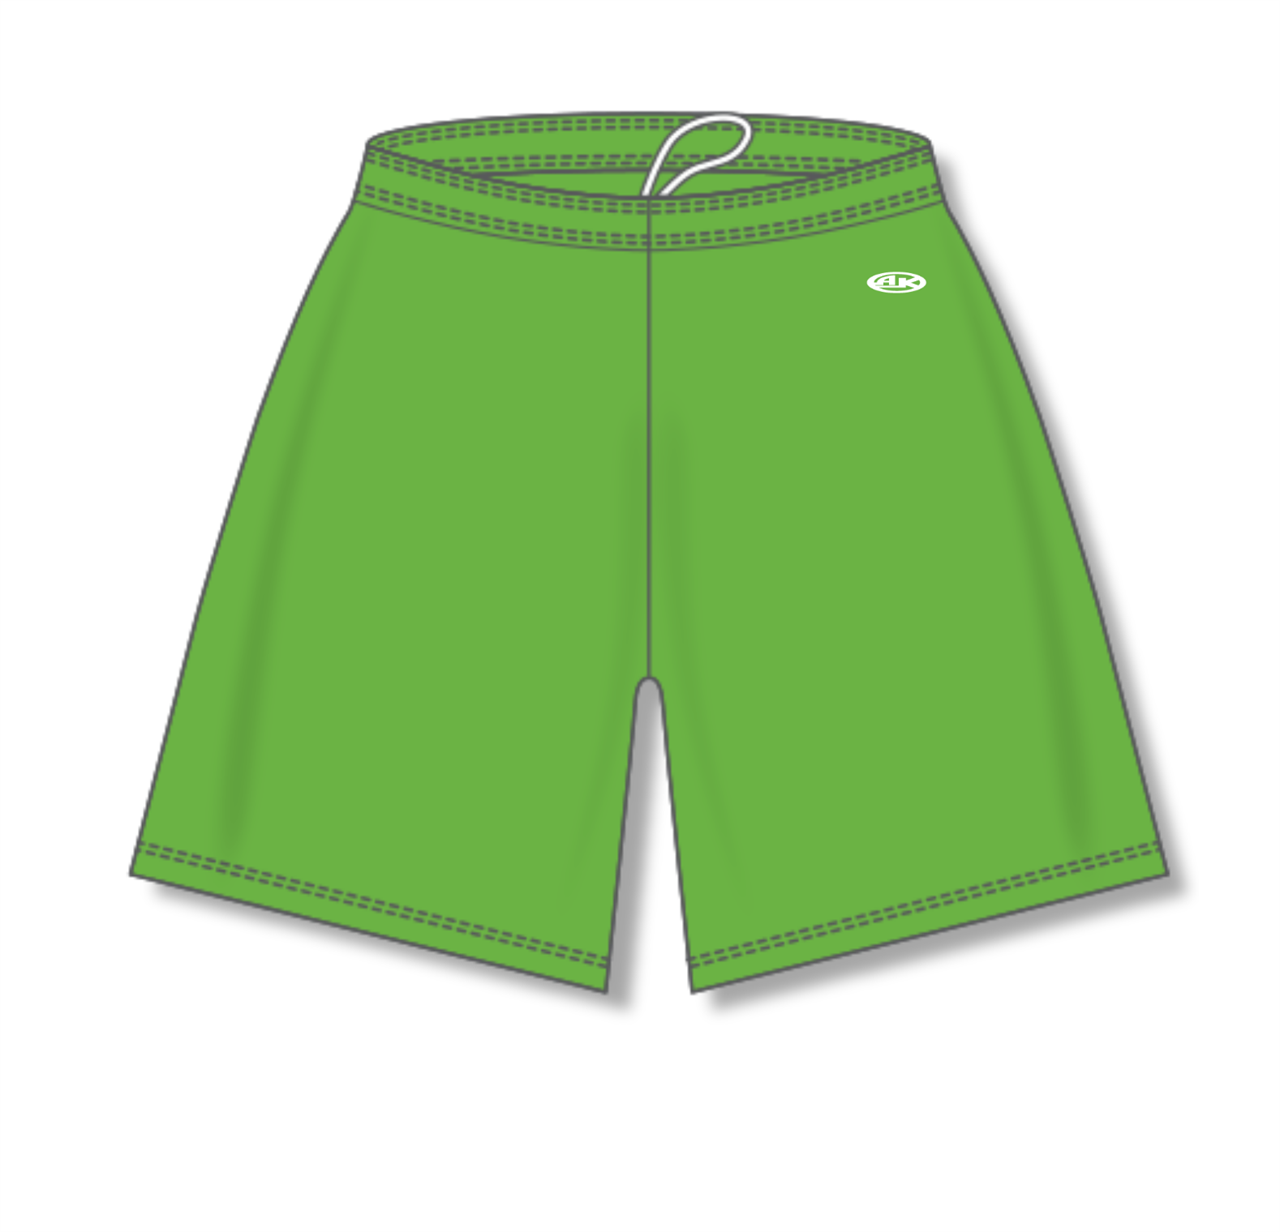 Picture of AK Pro Soccer Shorts (Youth)